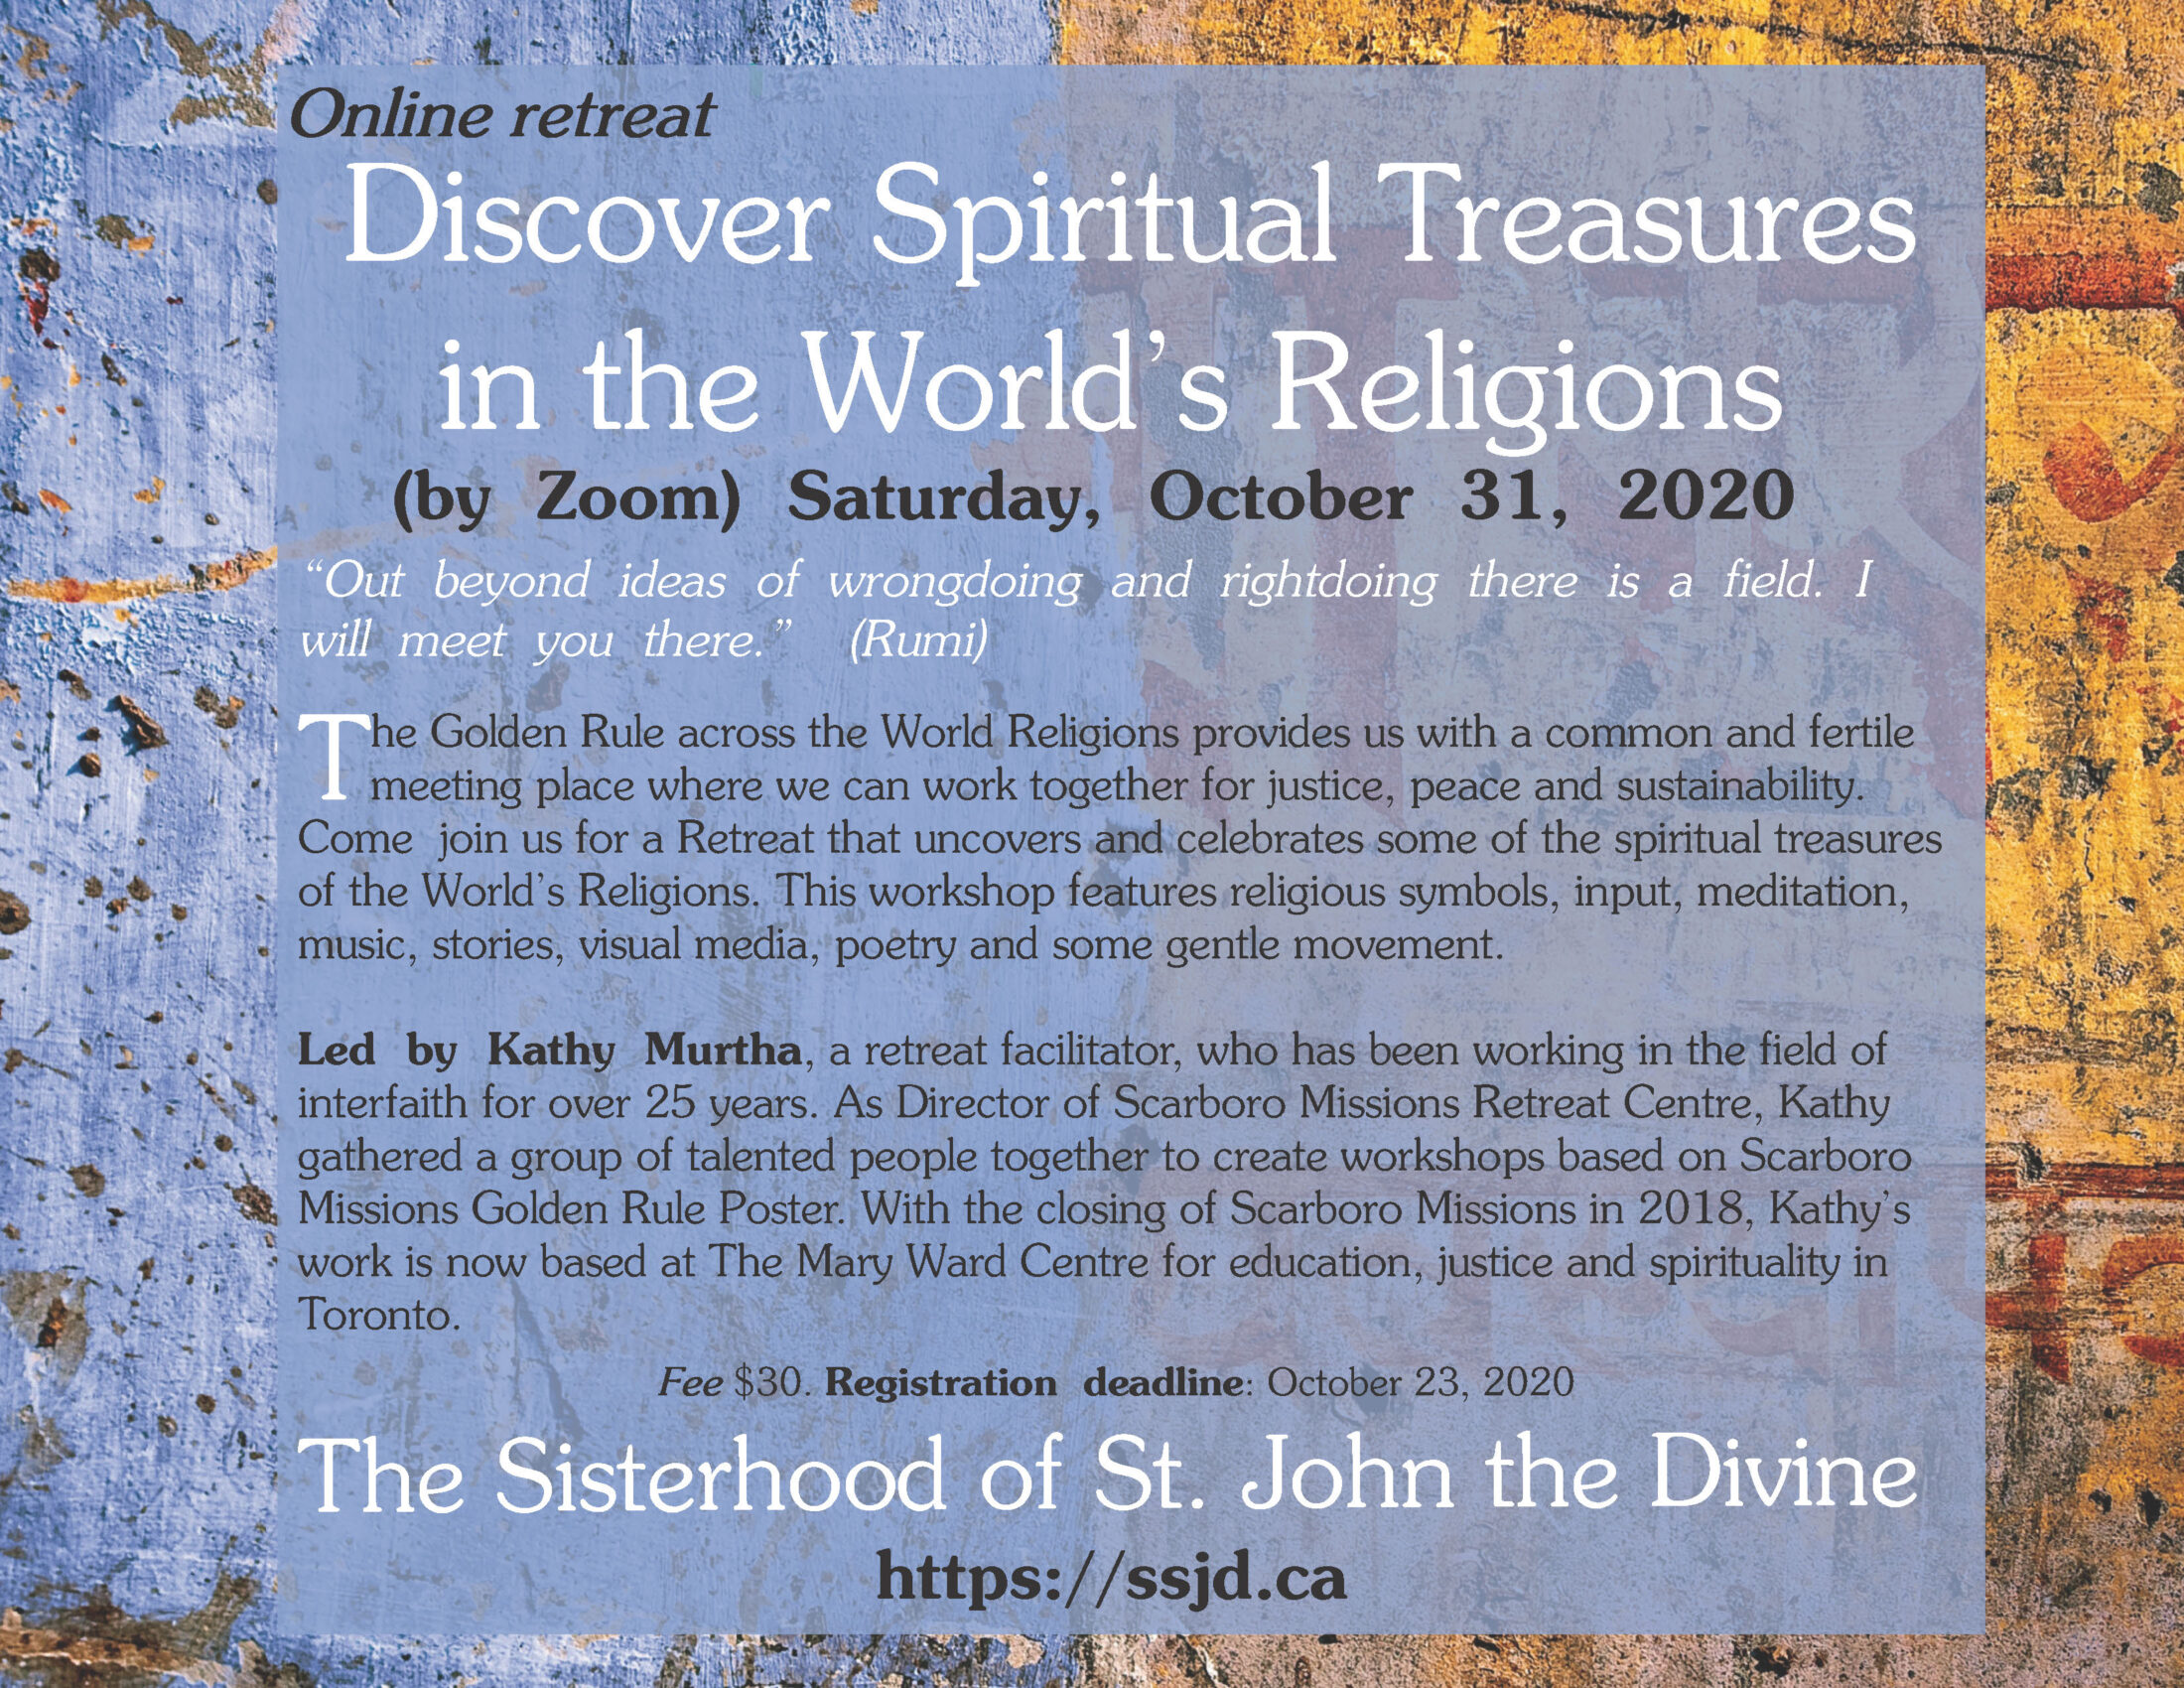 Discover Spiritual Treasures in the World's Religions